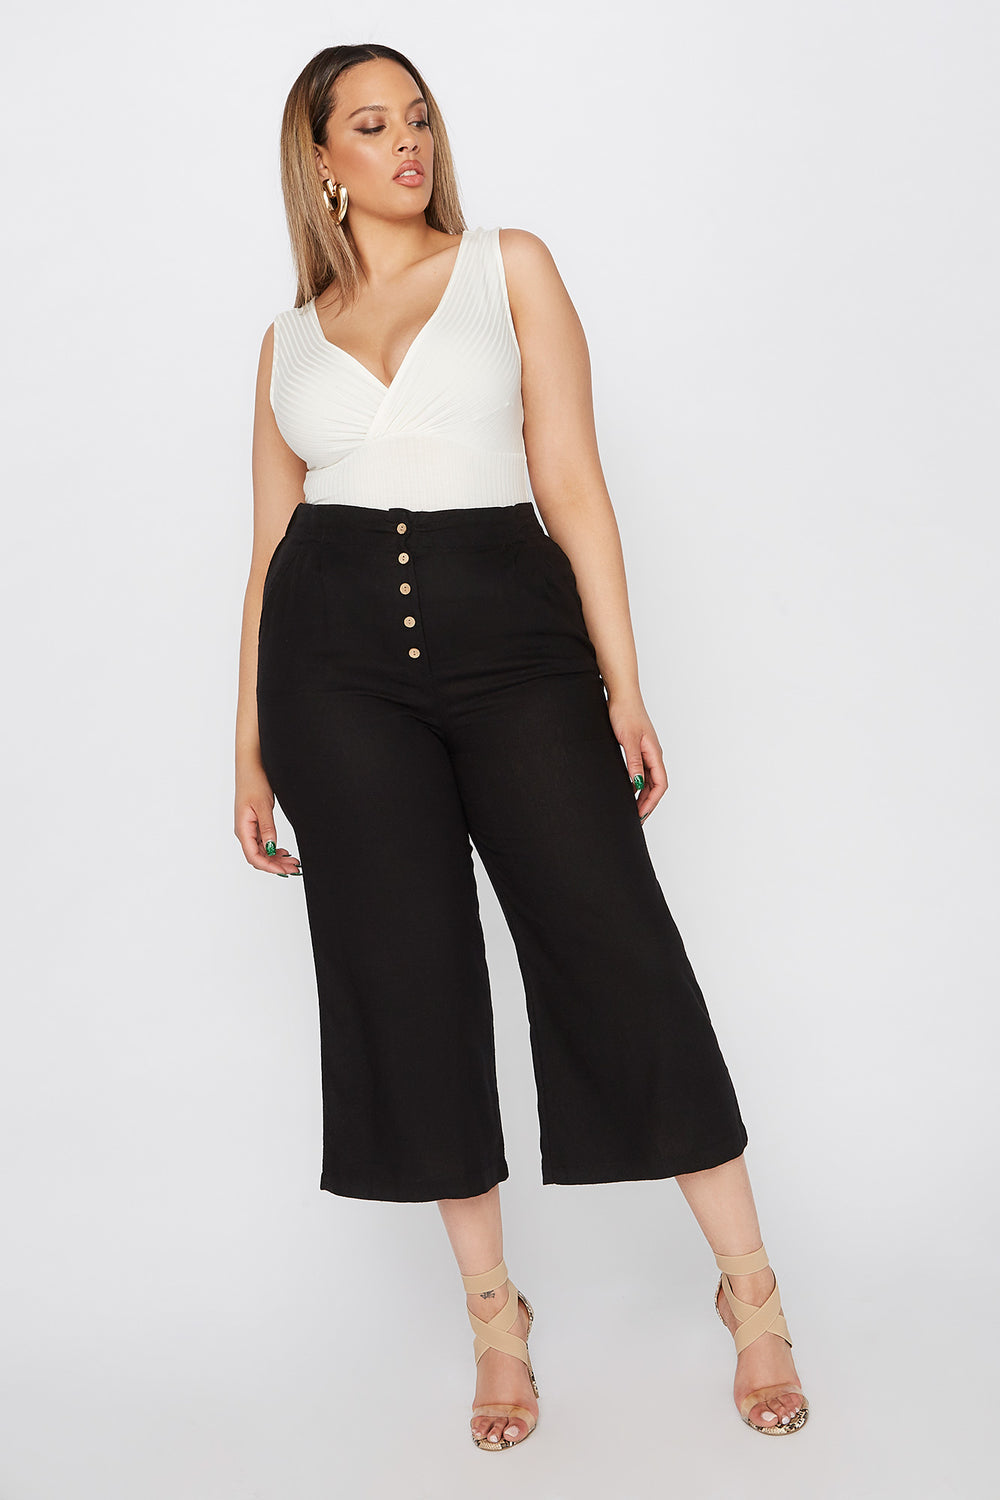 Plus Size Button-Up Linen Culotte Pant Black